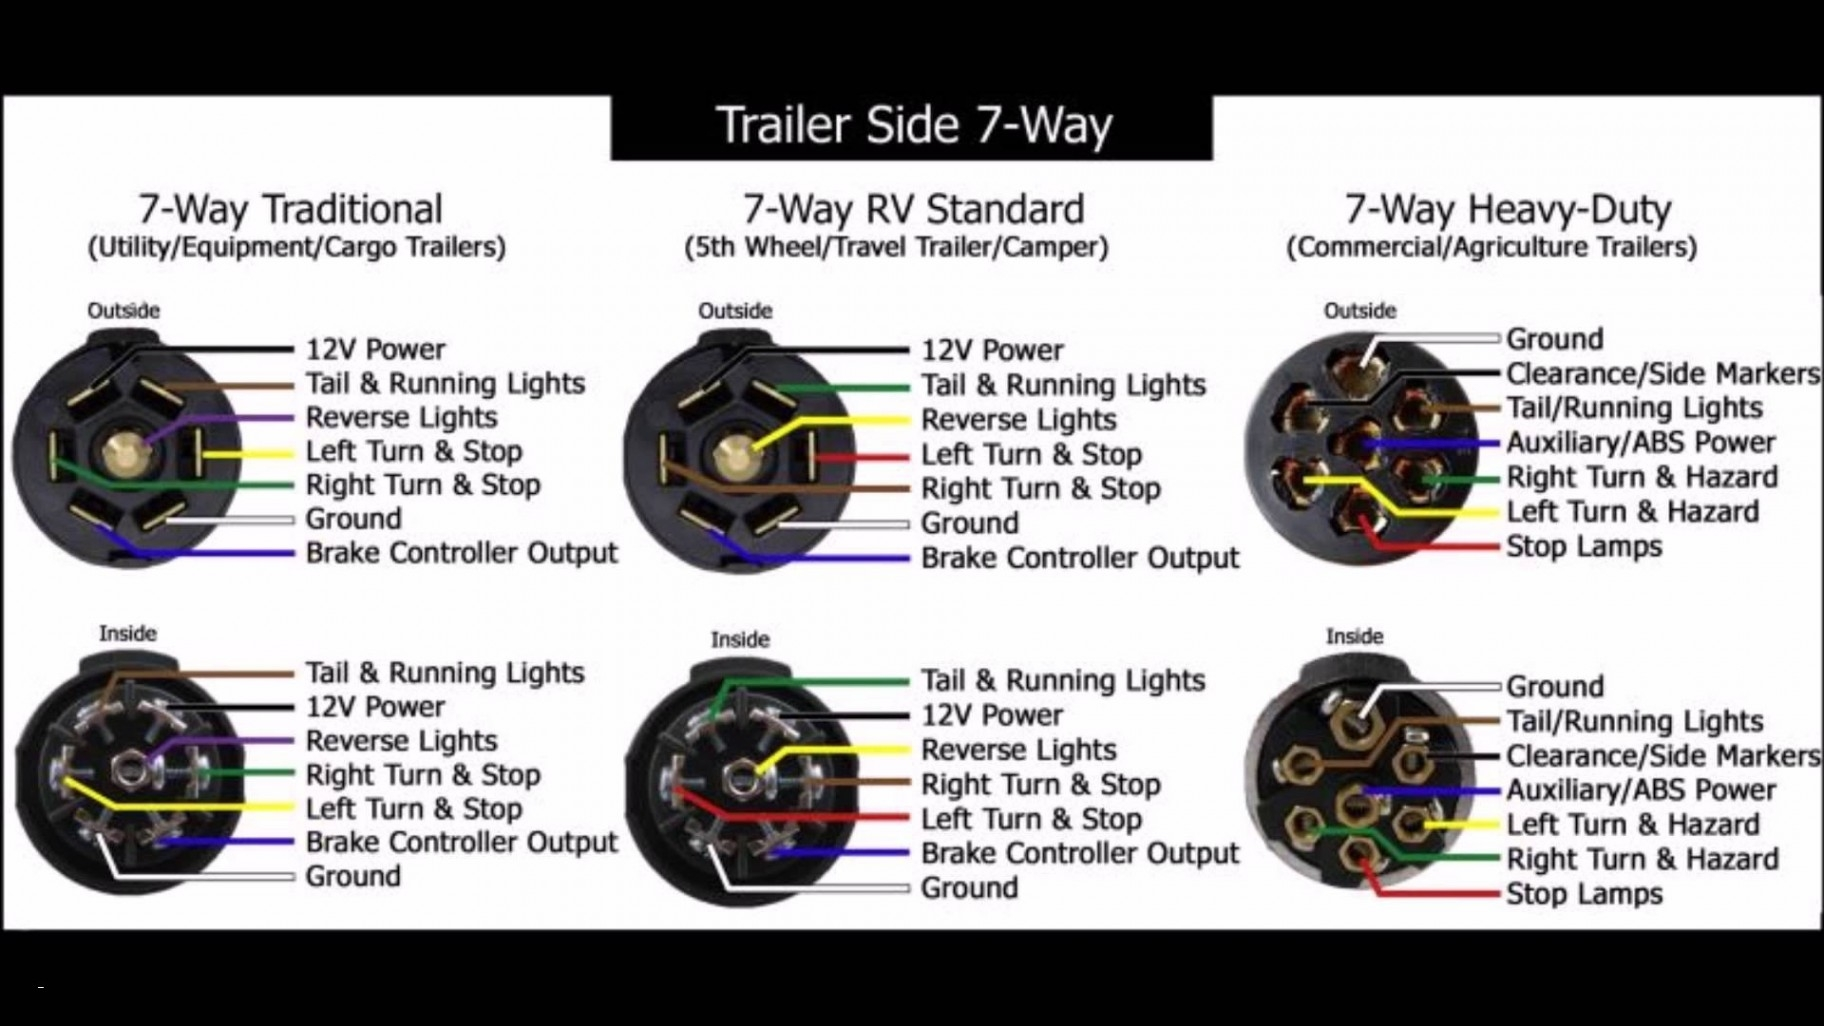 Semi Trailer Plug Wiring Diagram 7 Way Manual Guide